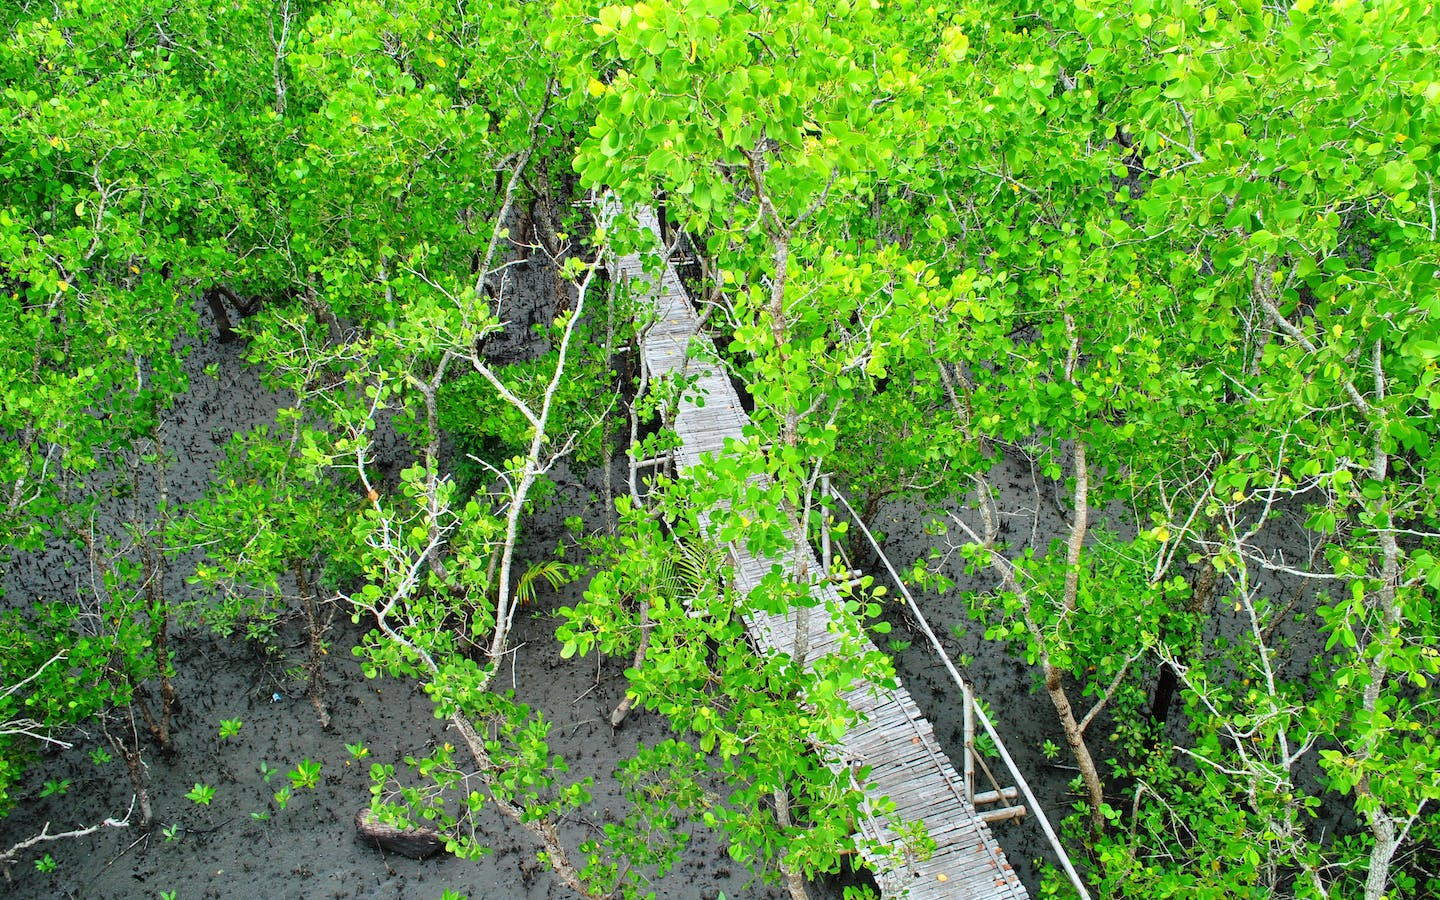 Bamboo boardwalk of the Silonay Mangrove Eco-park